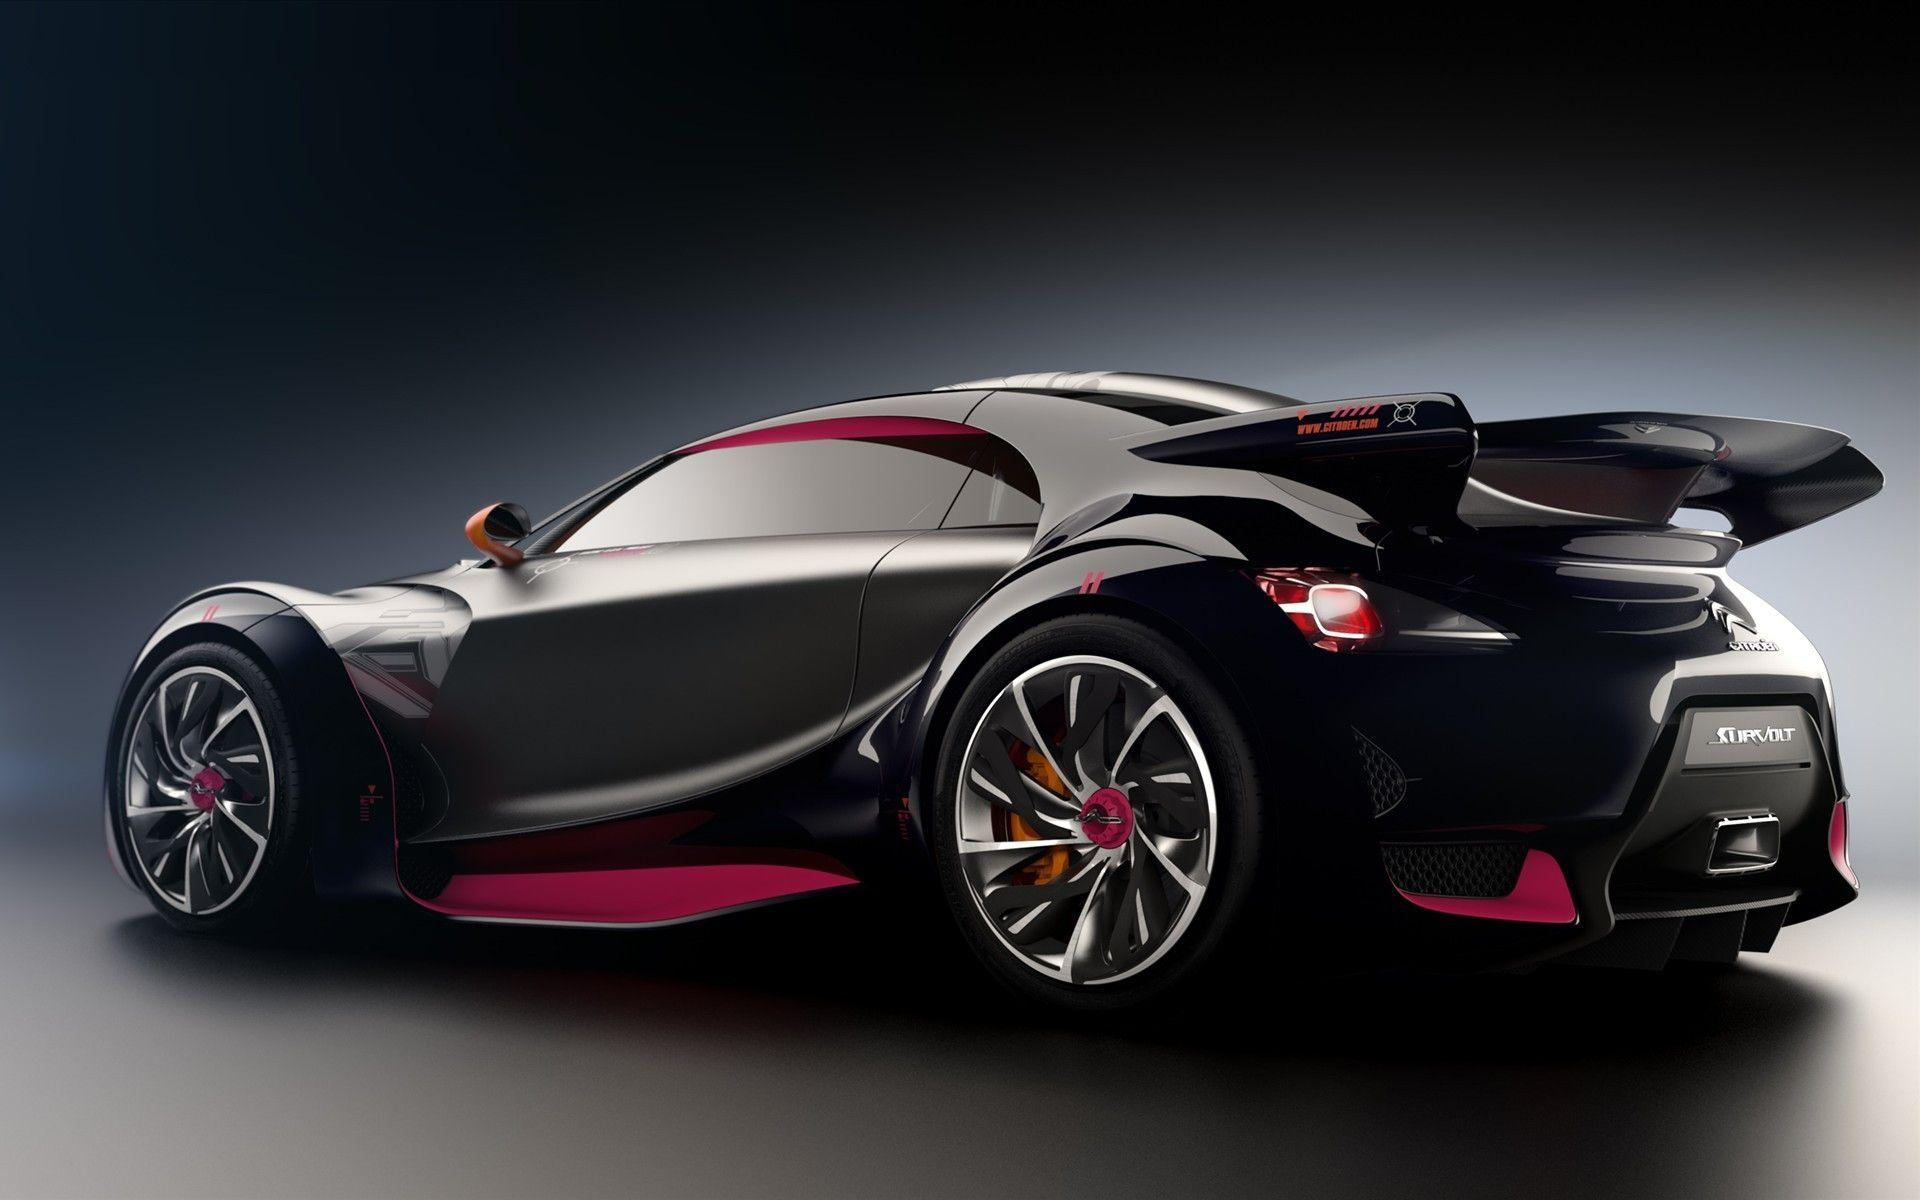 Lexus Sport Cars Wallpaper Hd Car Wallpapers Wallpaper Sport Car ...